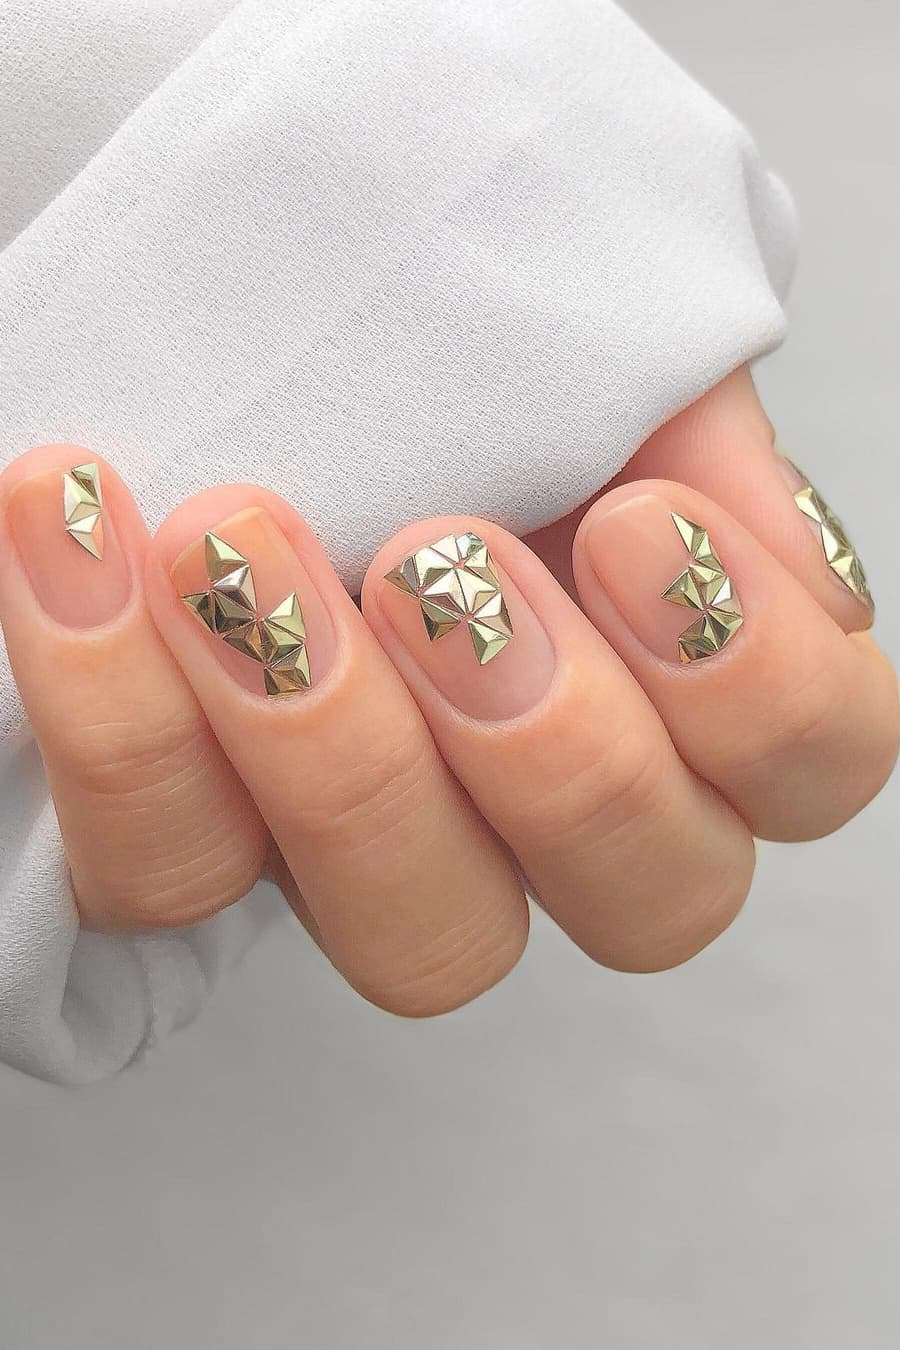 Special negative space nails